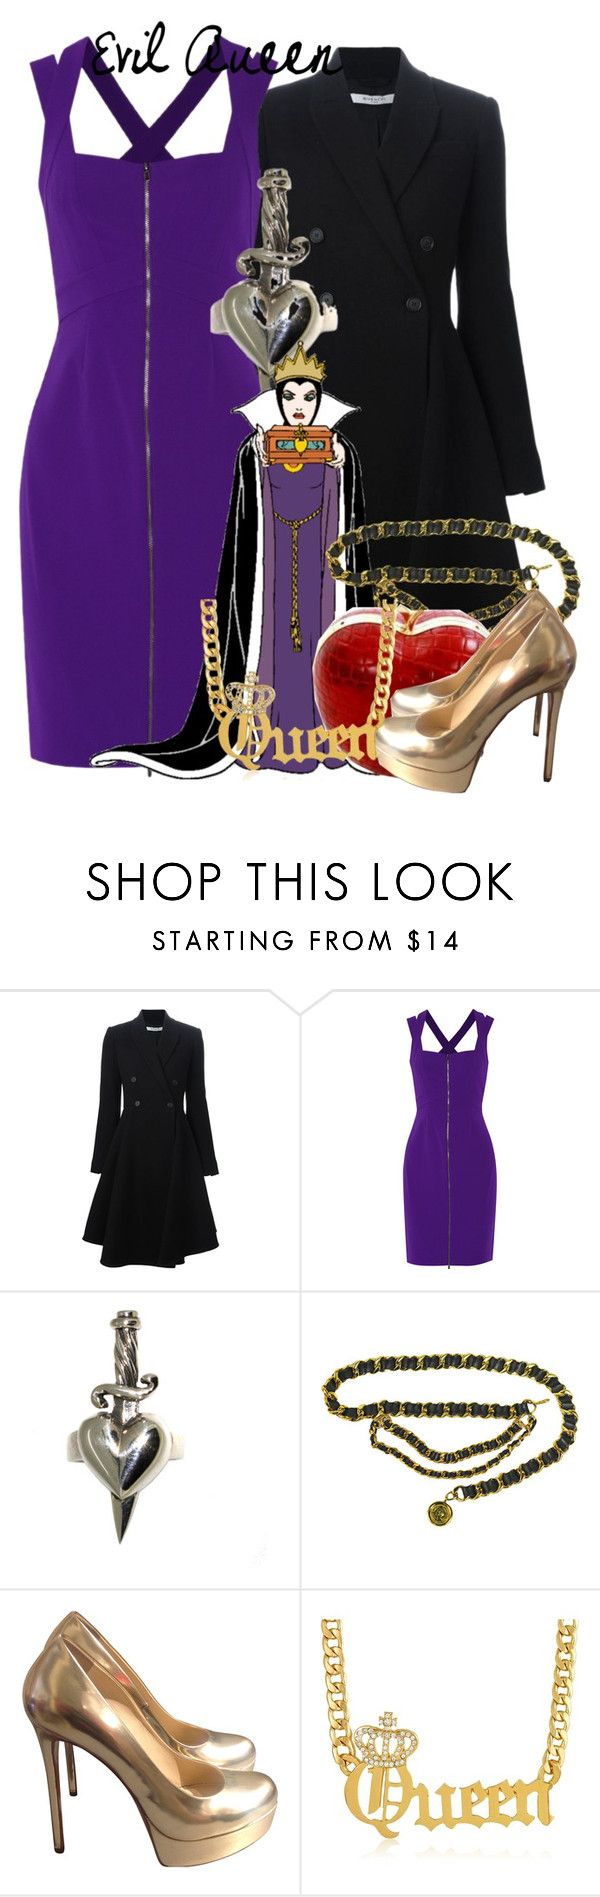 """""""Evil Queen--Psylocke"""" by fandom-girls ❤ liked on Polyvore featuring Givenchy, Diane Von Furstenberg, Metal Couture, Gianmarco Lorenzi and psylockebounds"""